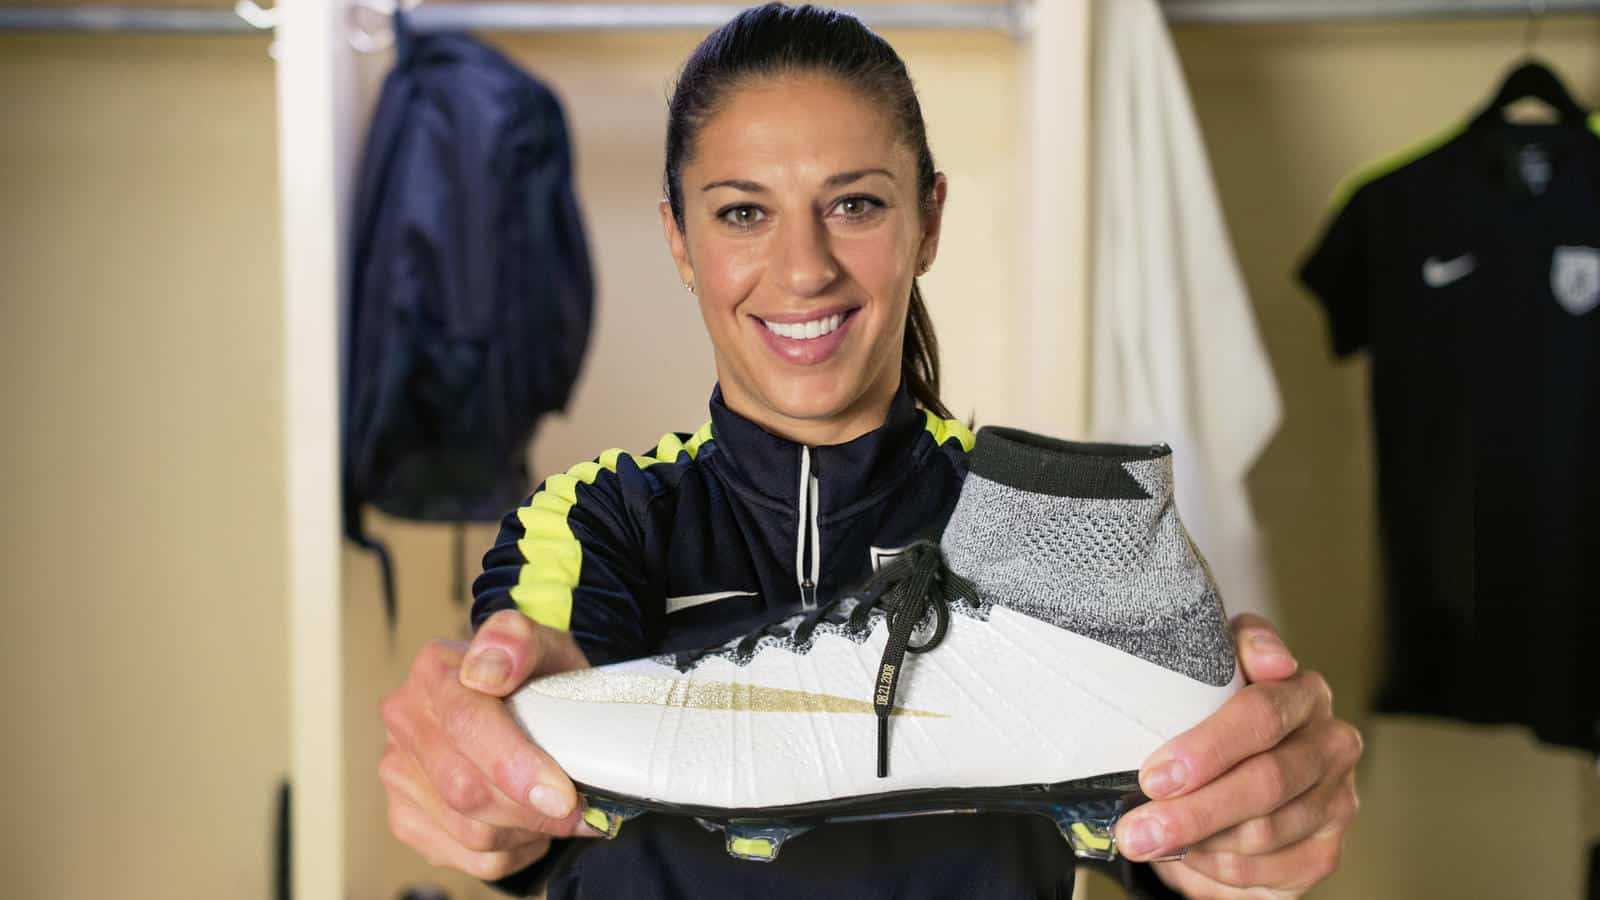 chaussure-nike-mercurial-superfly-carli-llyod-4